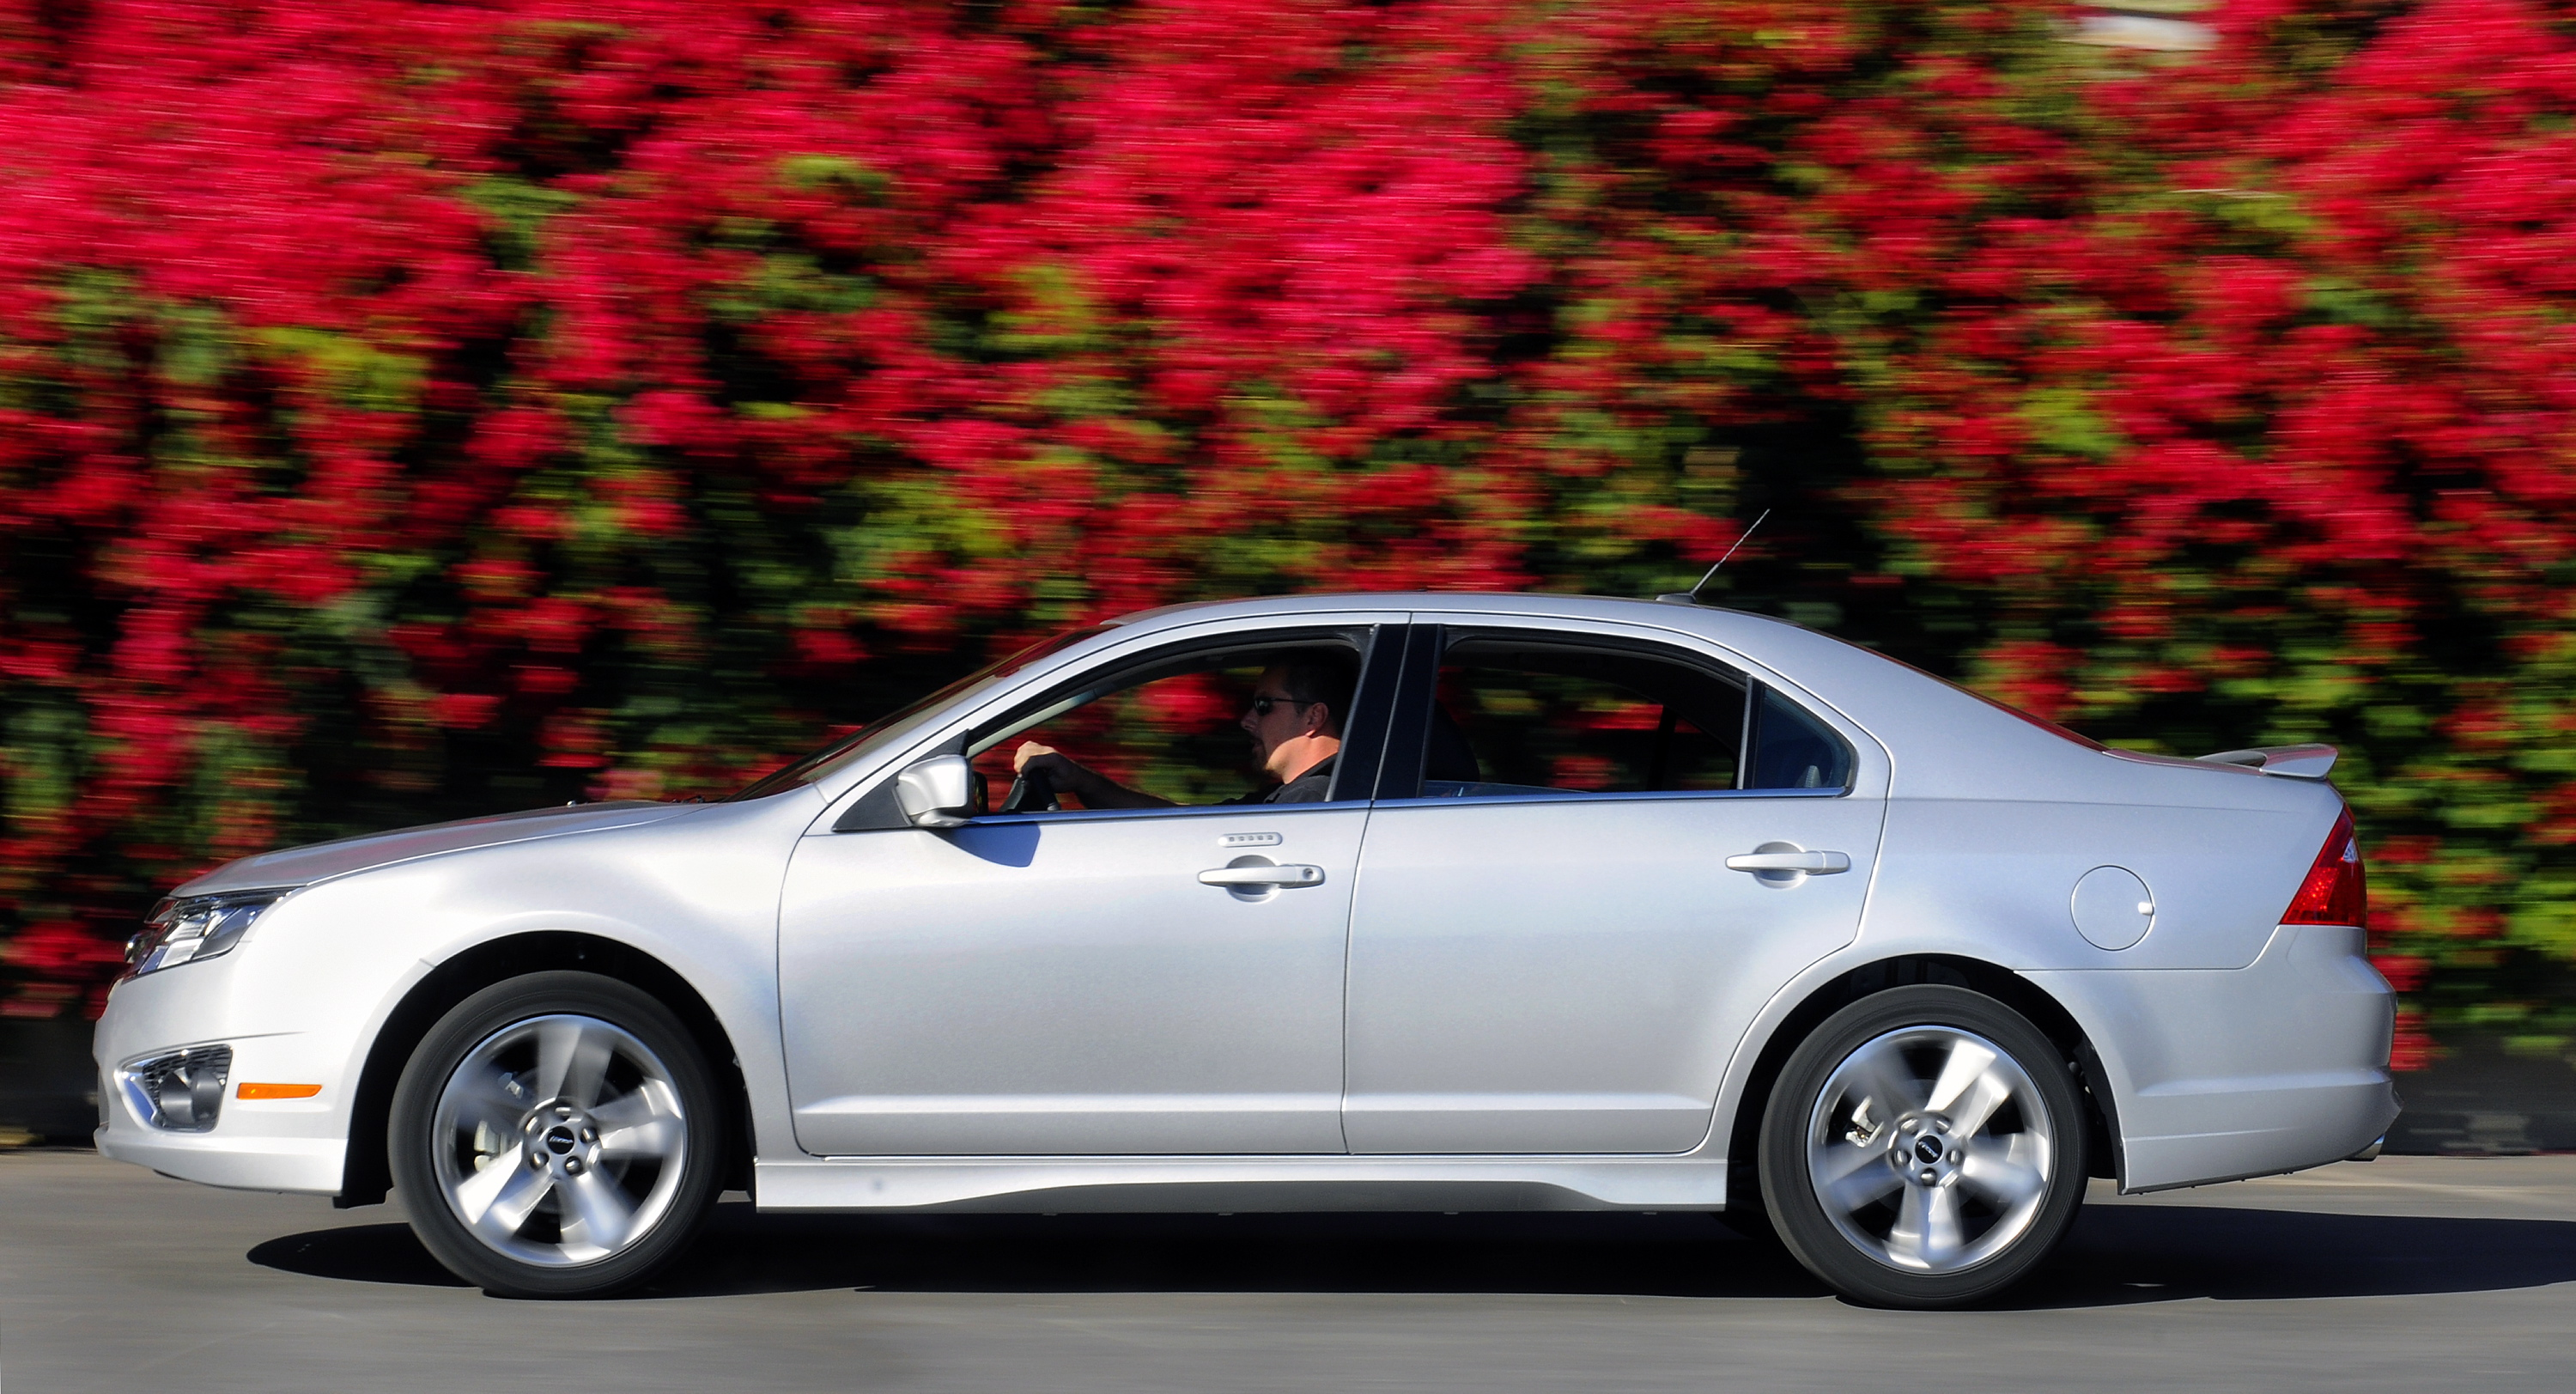 2008 FORD FUSION - Image #6